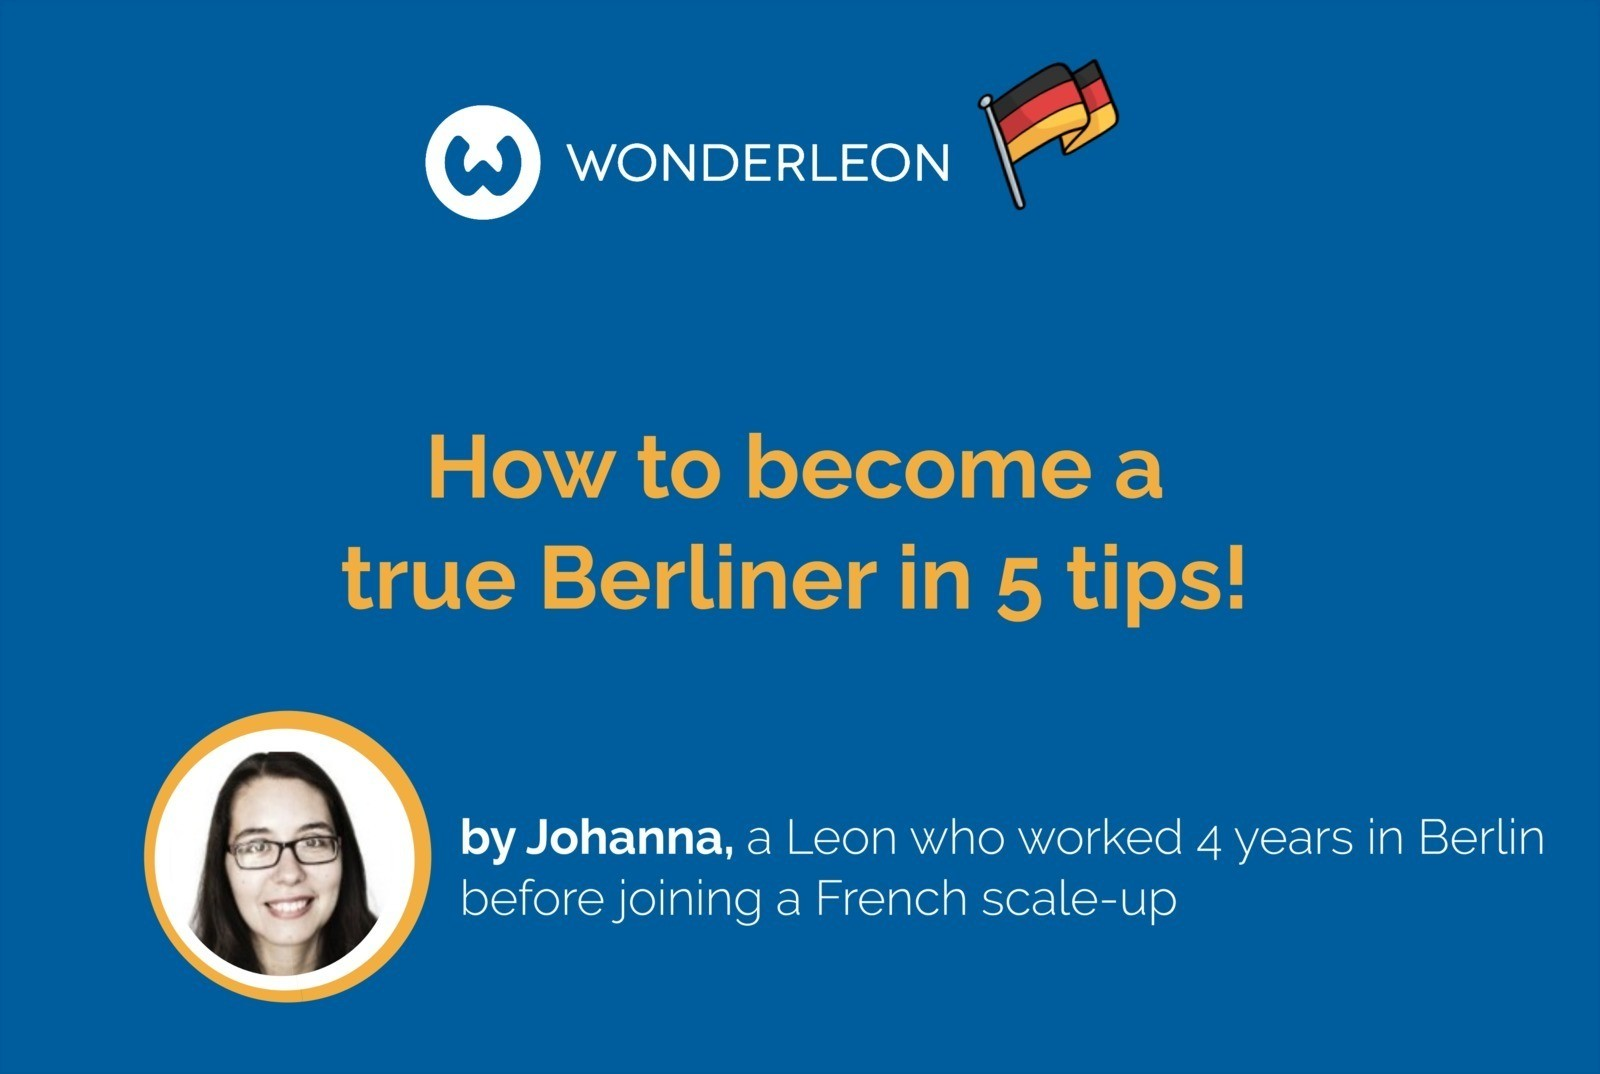 How to become a true Berliner?